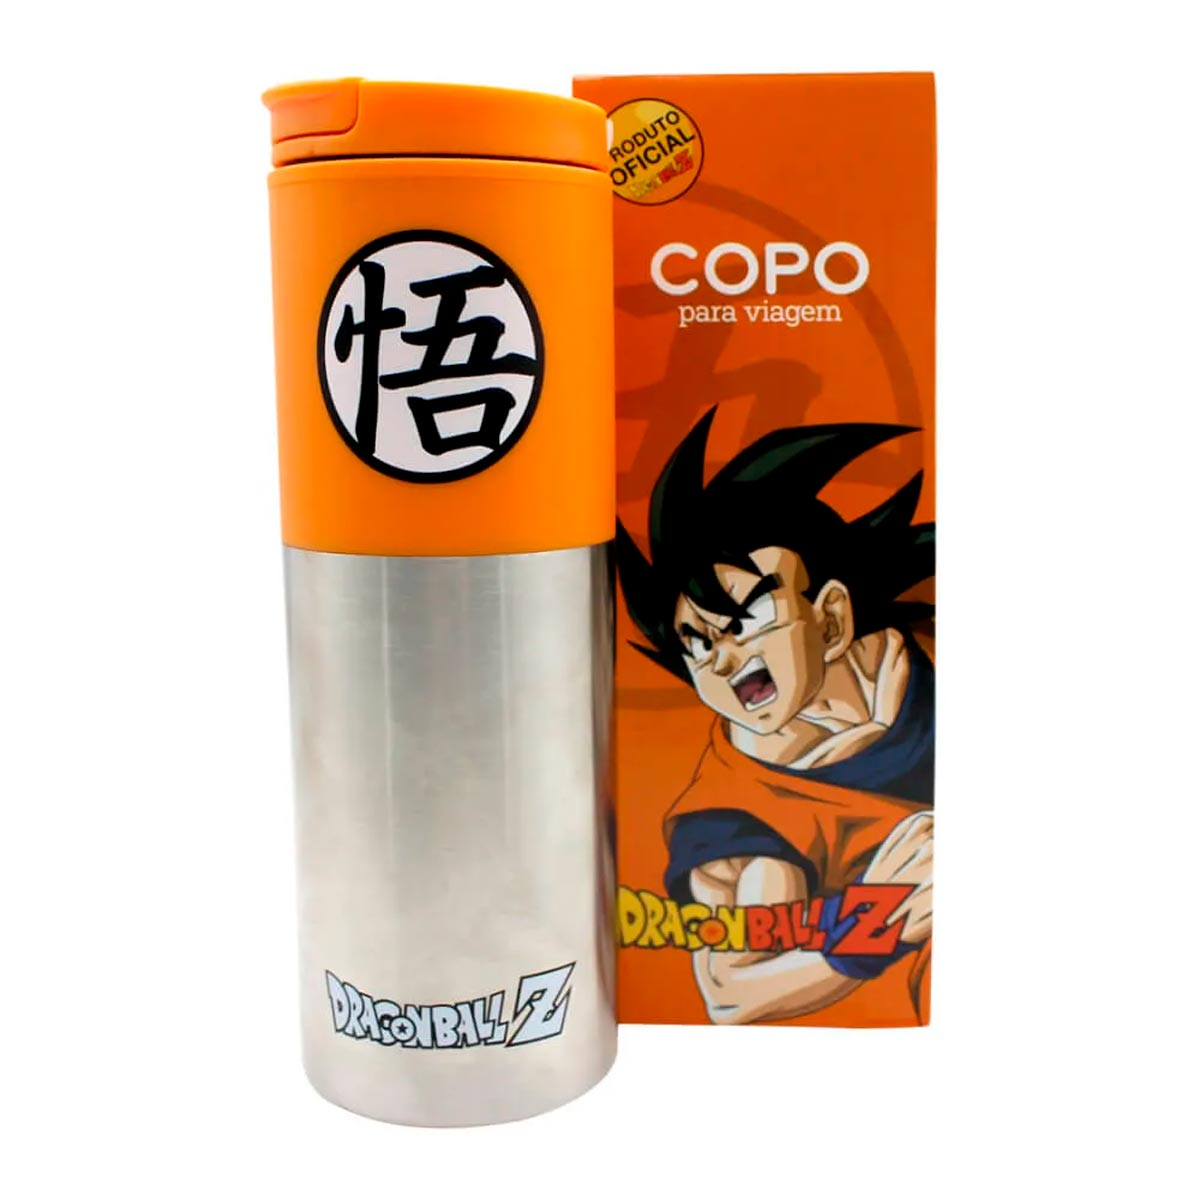 Copo Para Viagem Smart Goku Símbolo Dragon Ball Z 500 ml - Presente Super